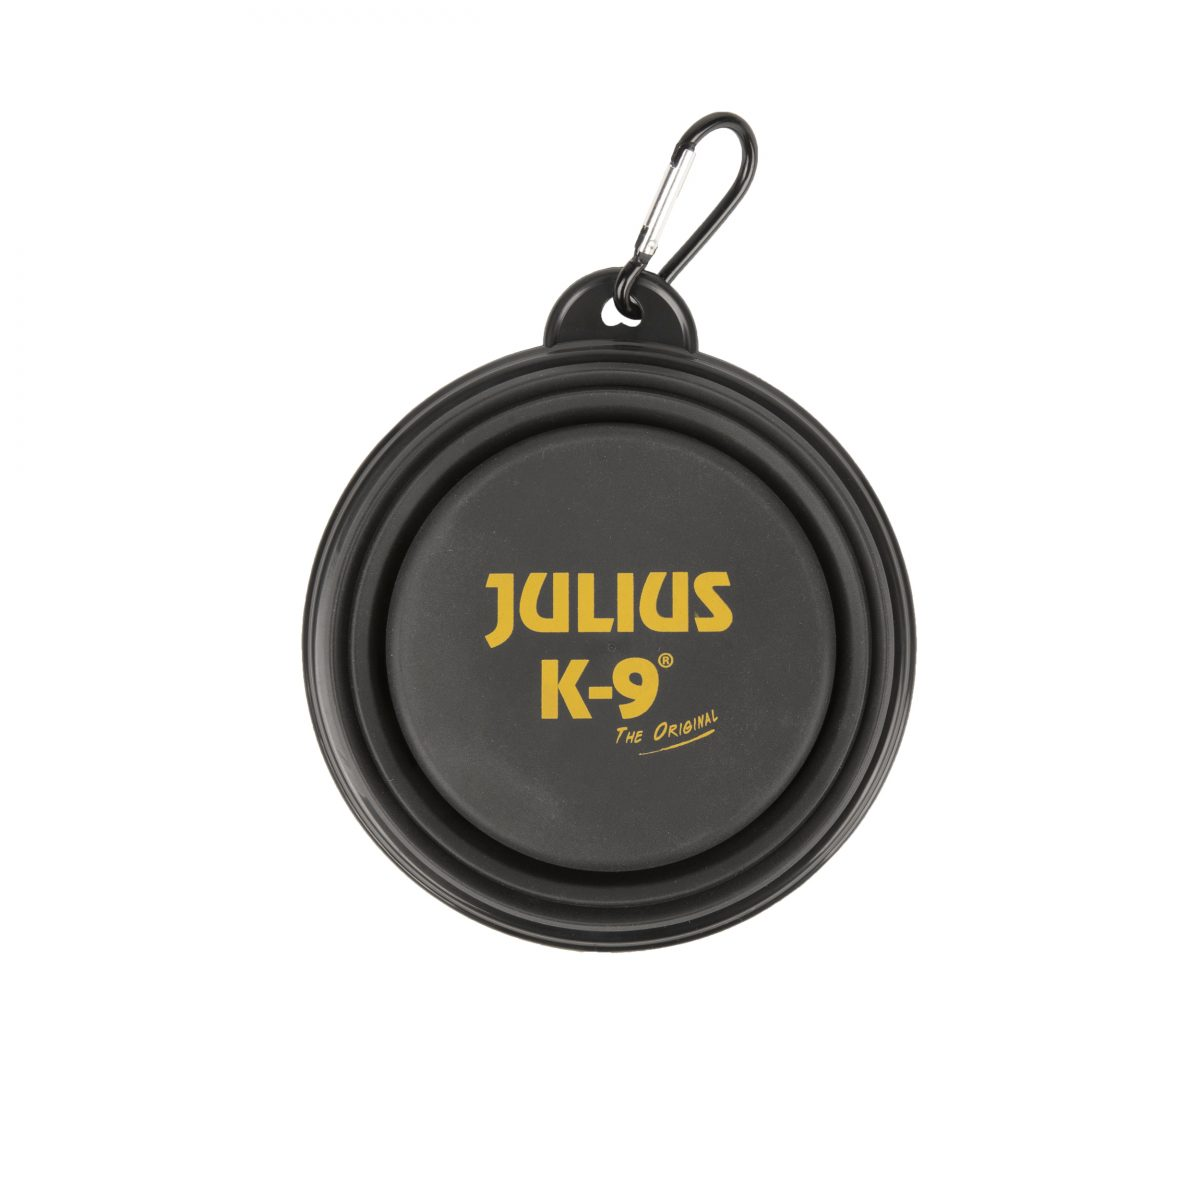 Bottom of Julius K9 NZ Collapsible bowl while collapsed